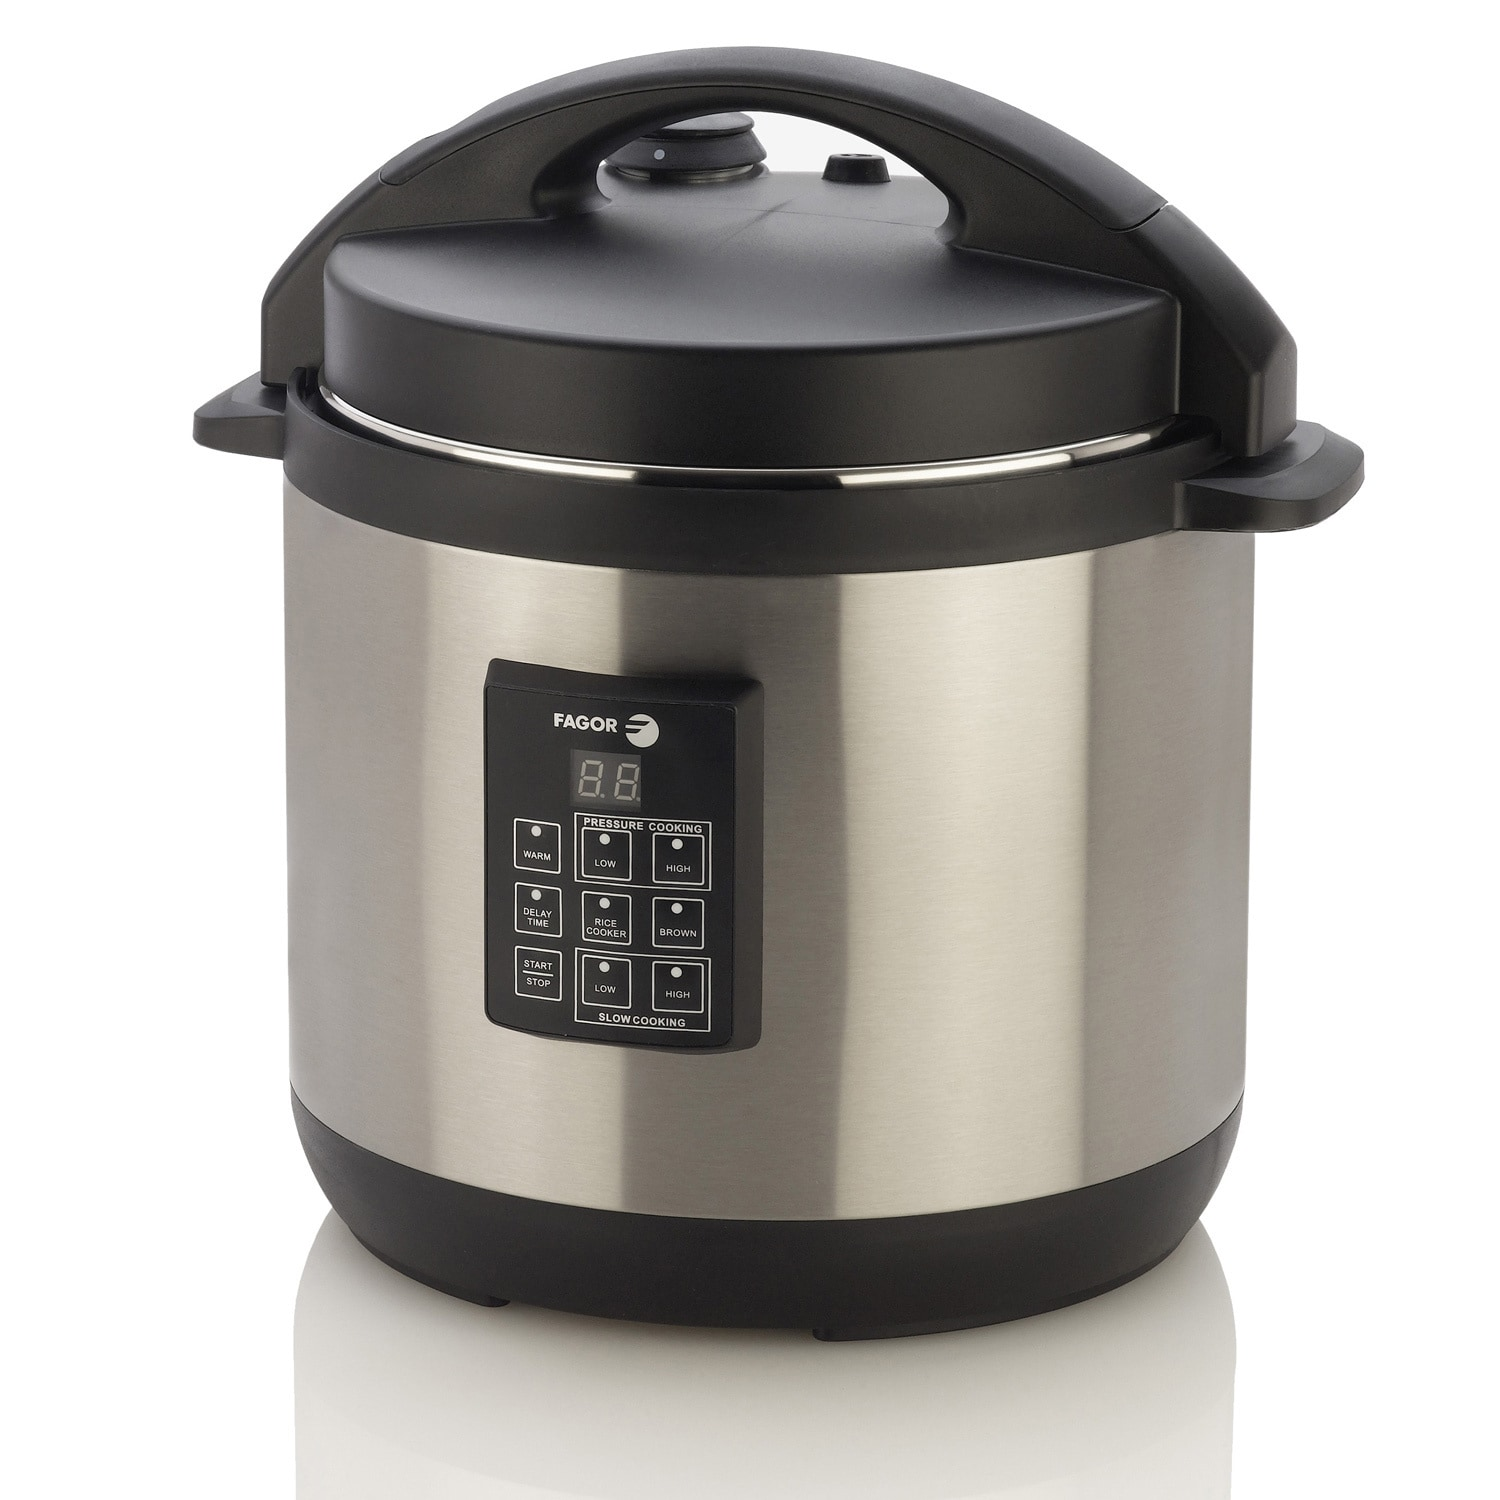 Fagor 6-quart 3-in-1 Electric Multi-cooker (3 in 1 Electr...